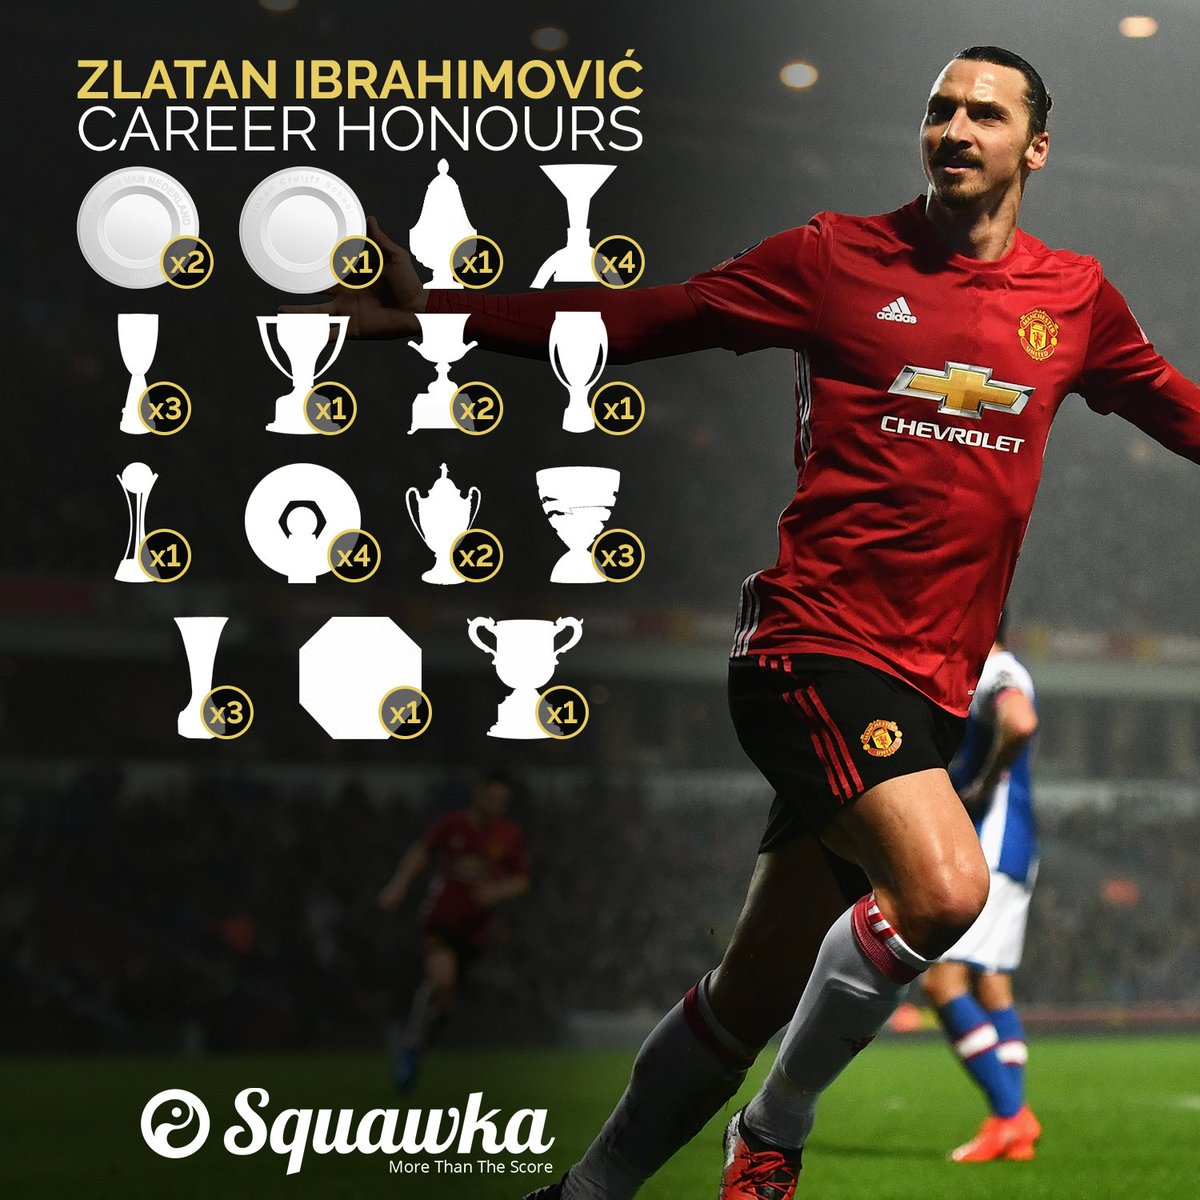 best cheap 95179 c959c Zlatan ibrahimovic has now won 30 career trophies, excluding ...